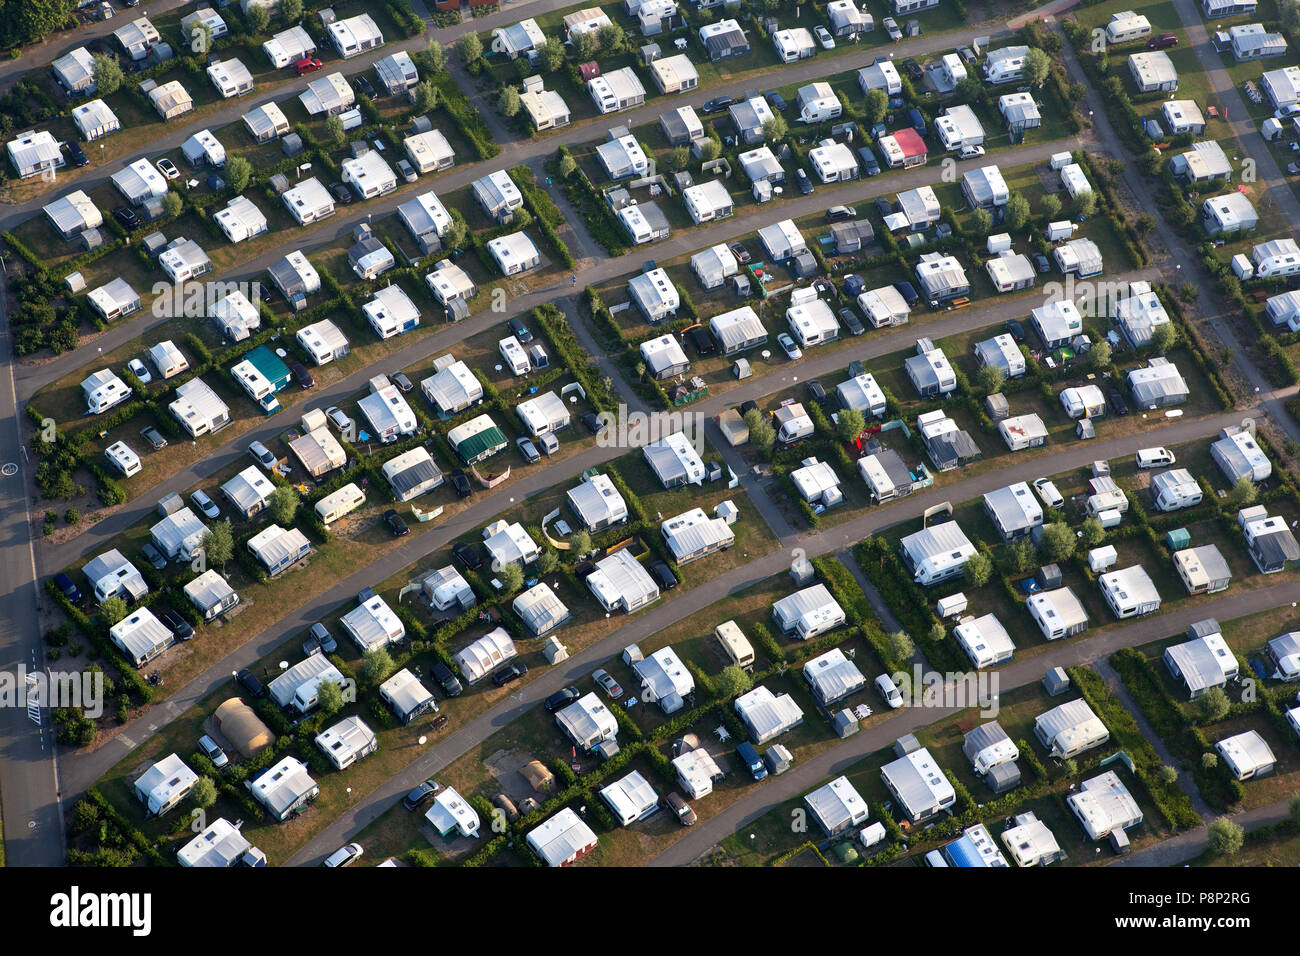 Aerial of a campground - Stock Image